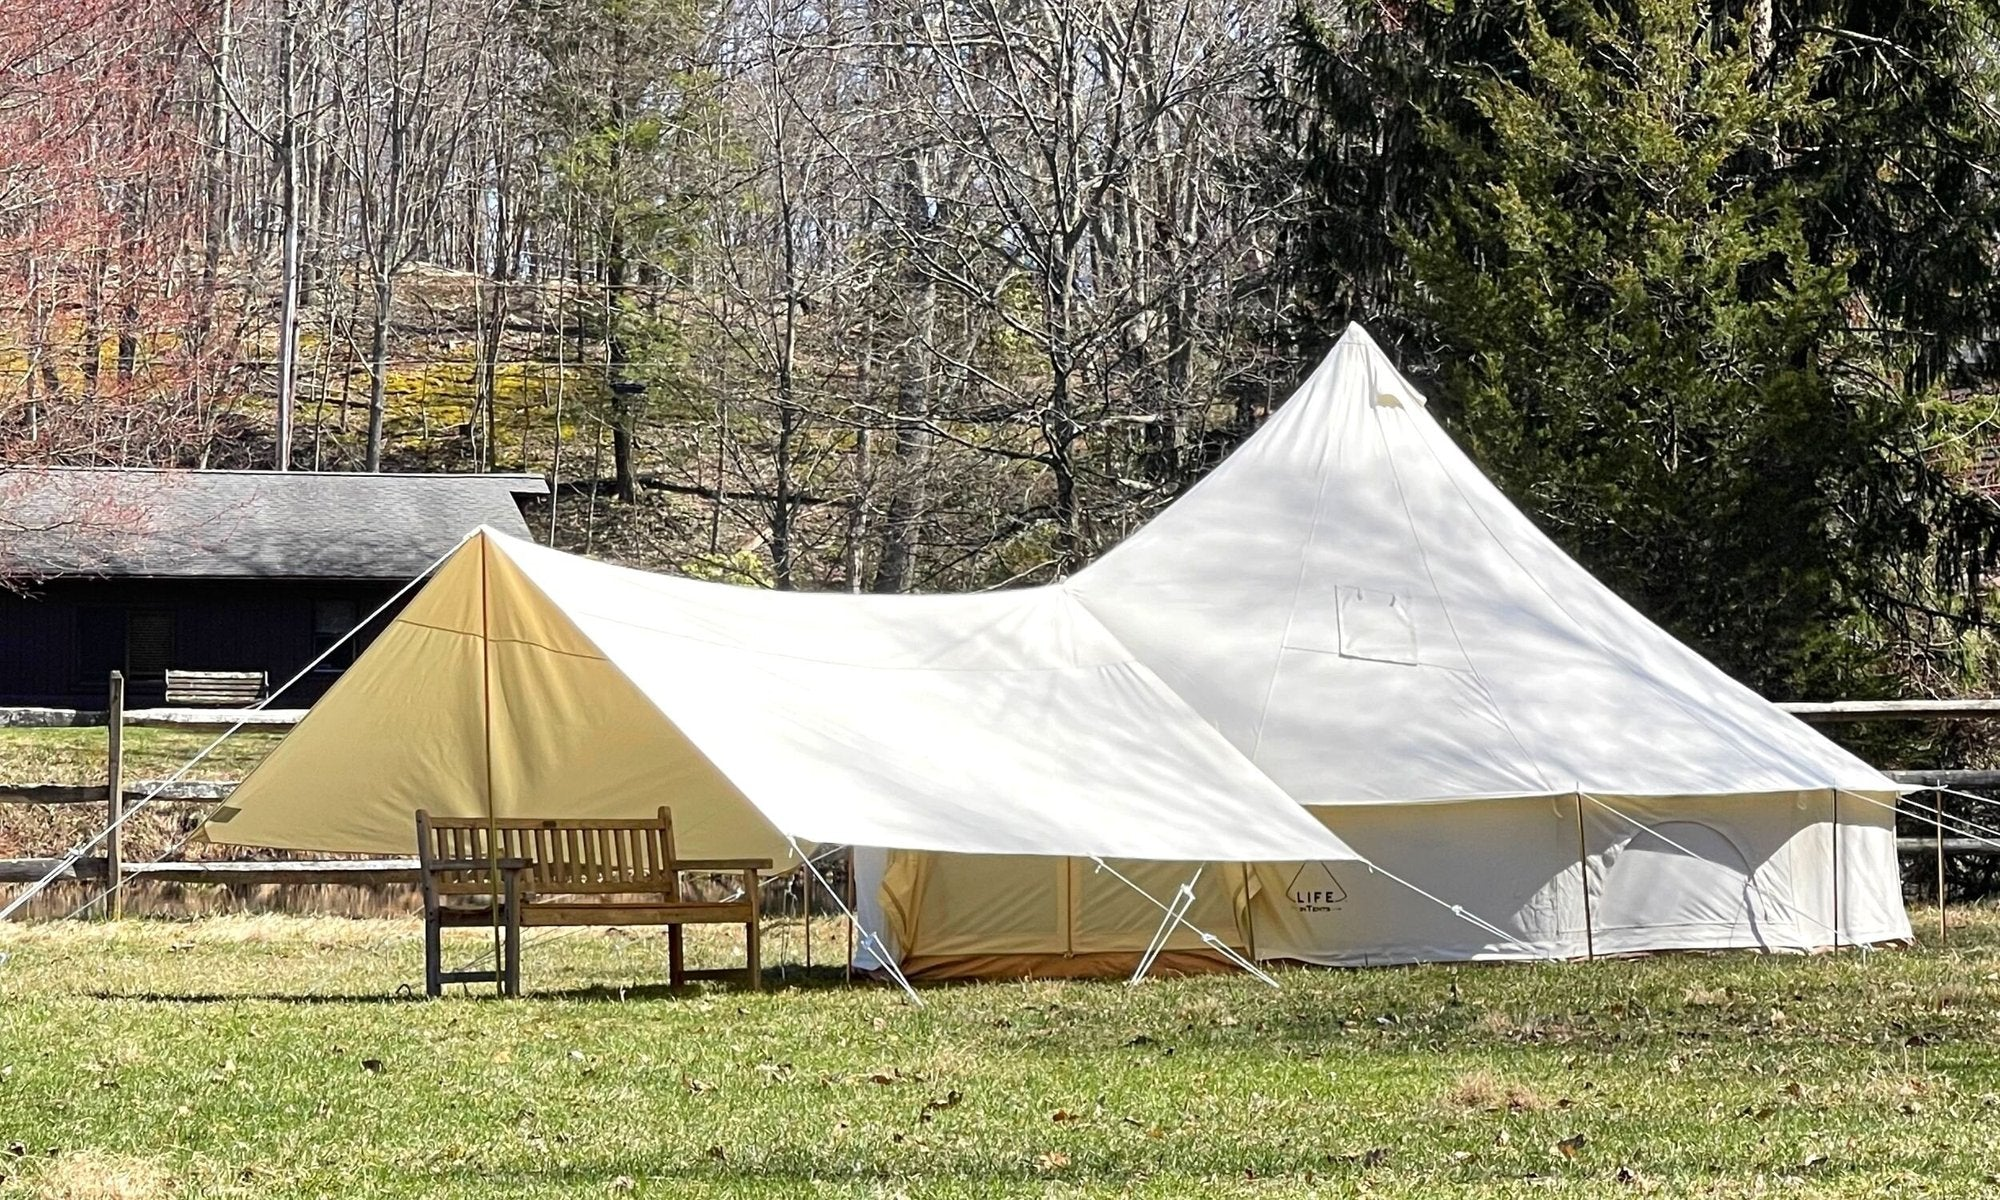 A white canvas bell tent that has an extended hallway connected to the front door, an awning for extra shade to keep cool.